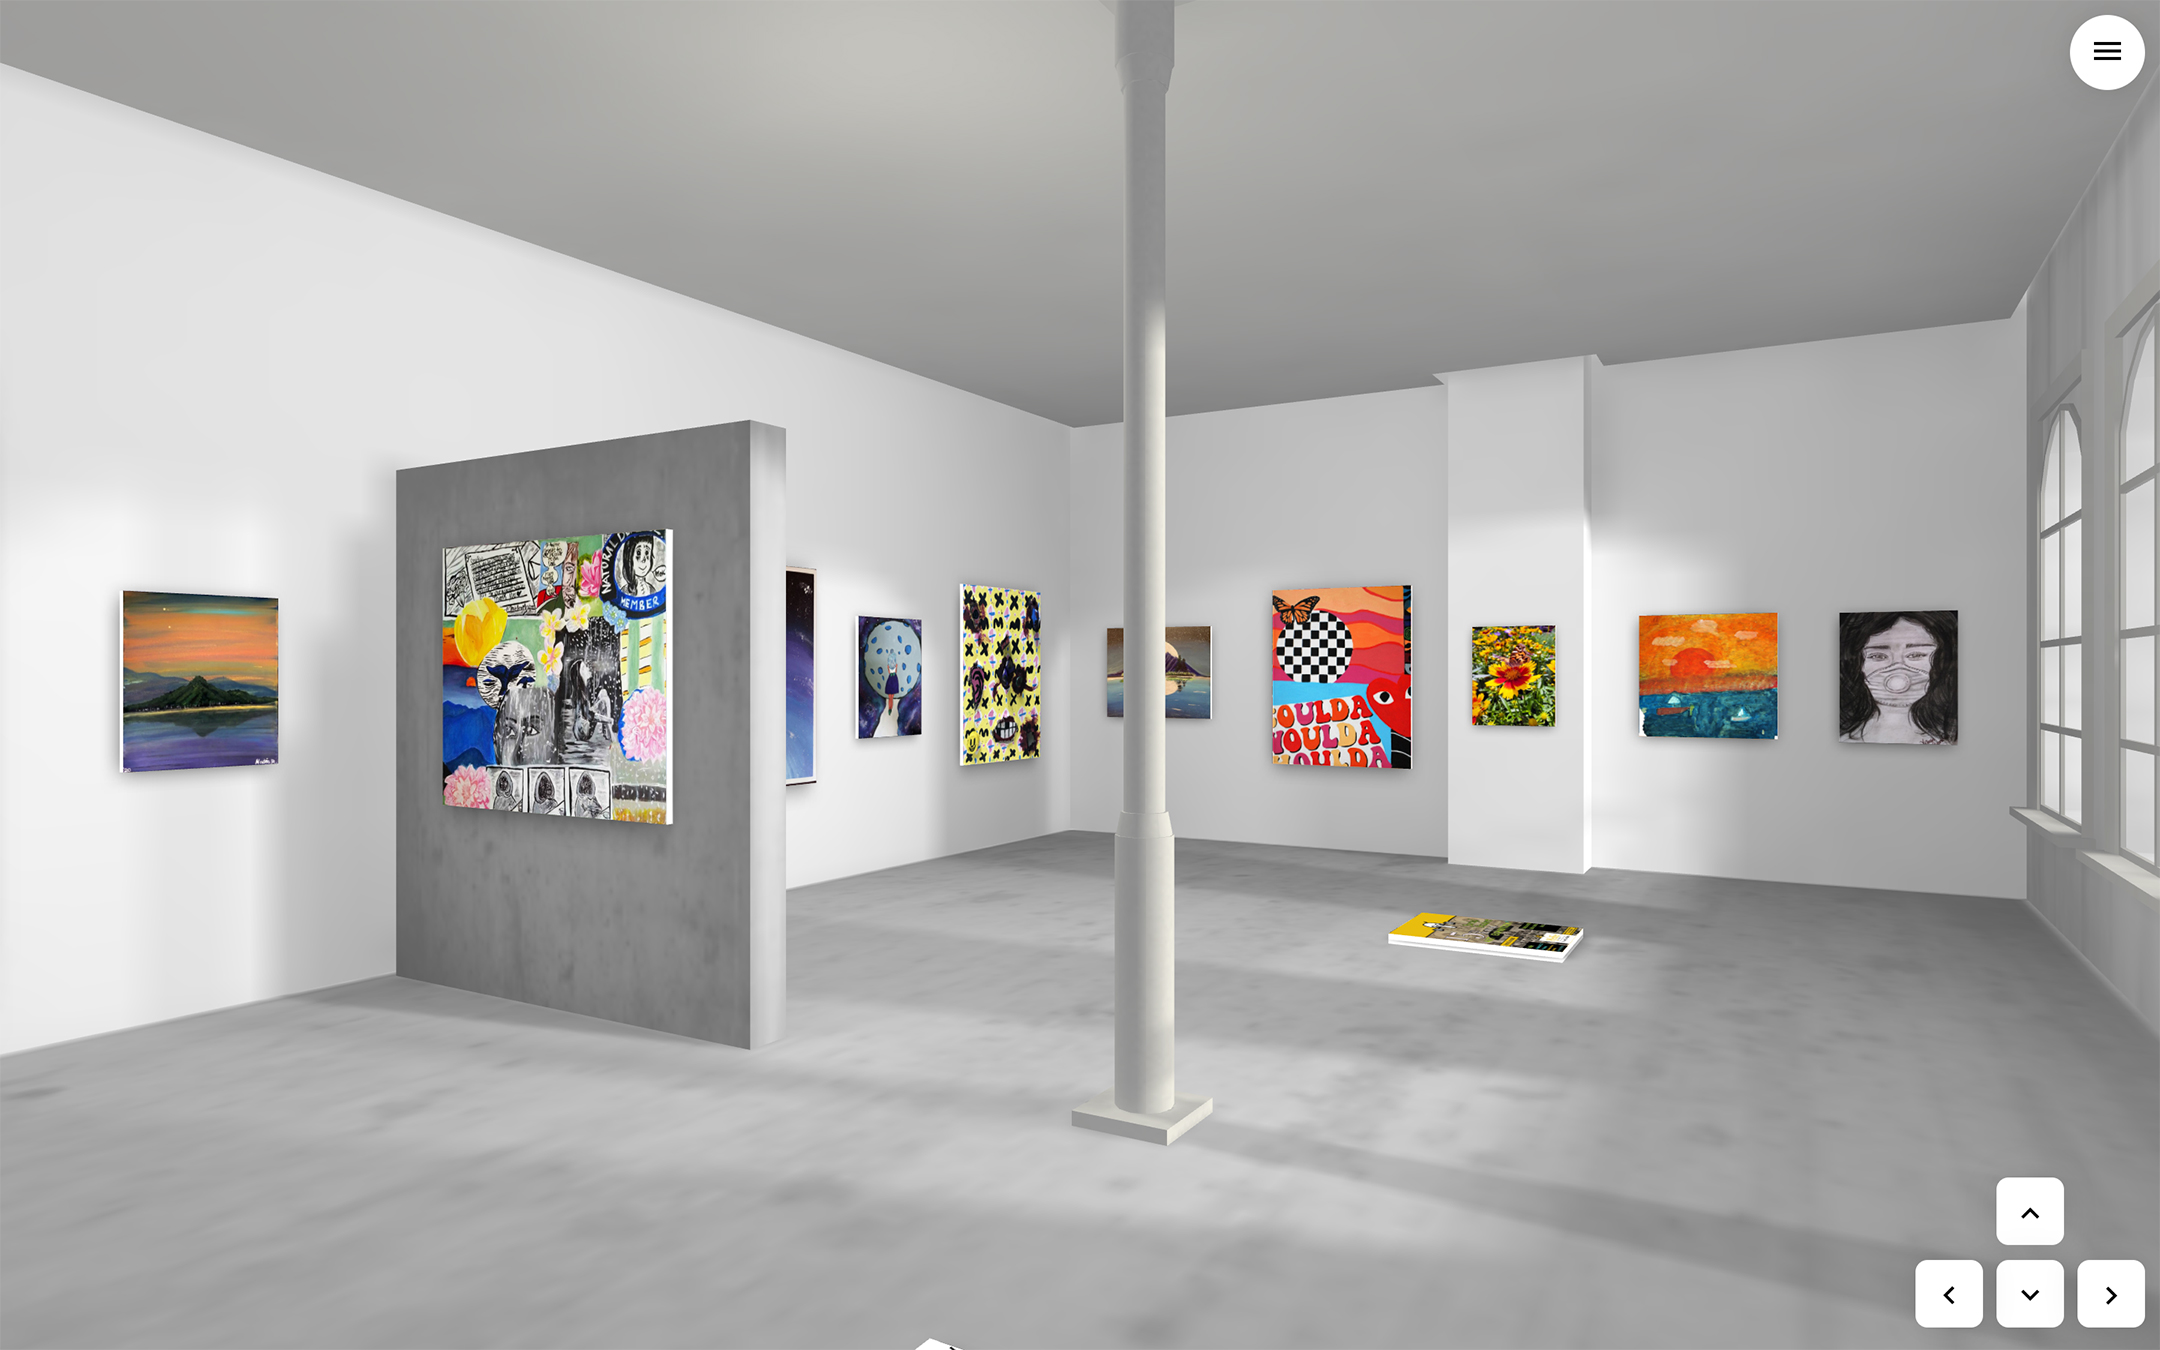 virtual reproduction of the pfeiffer university student art show, recreating the gallery space with paintings hanging on the walls